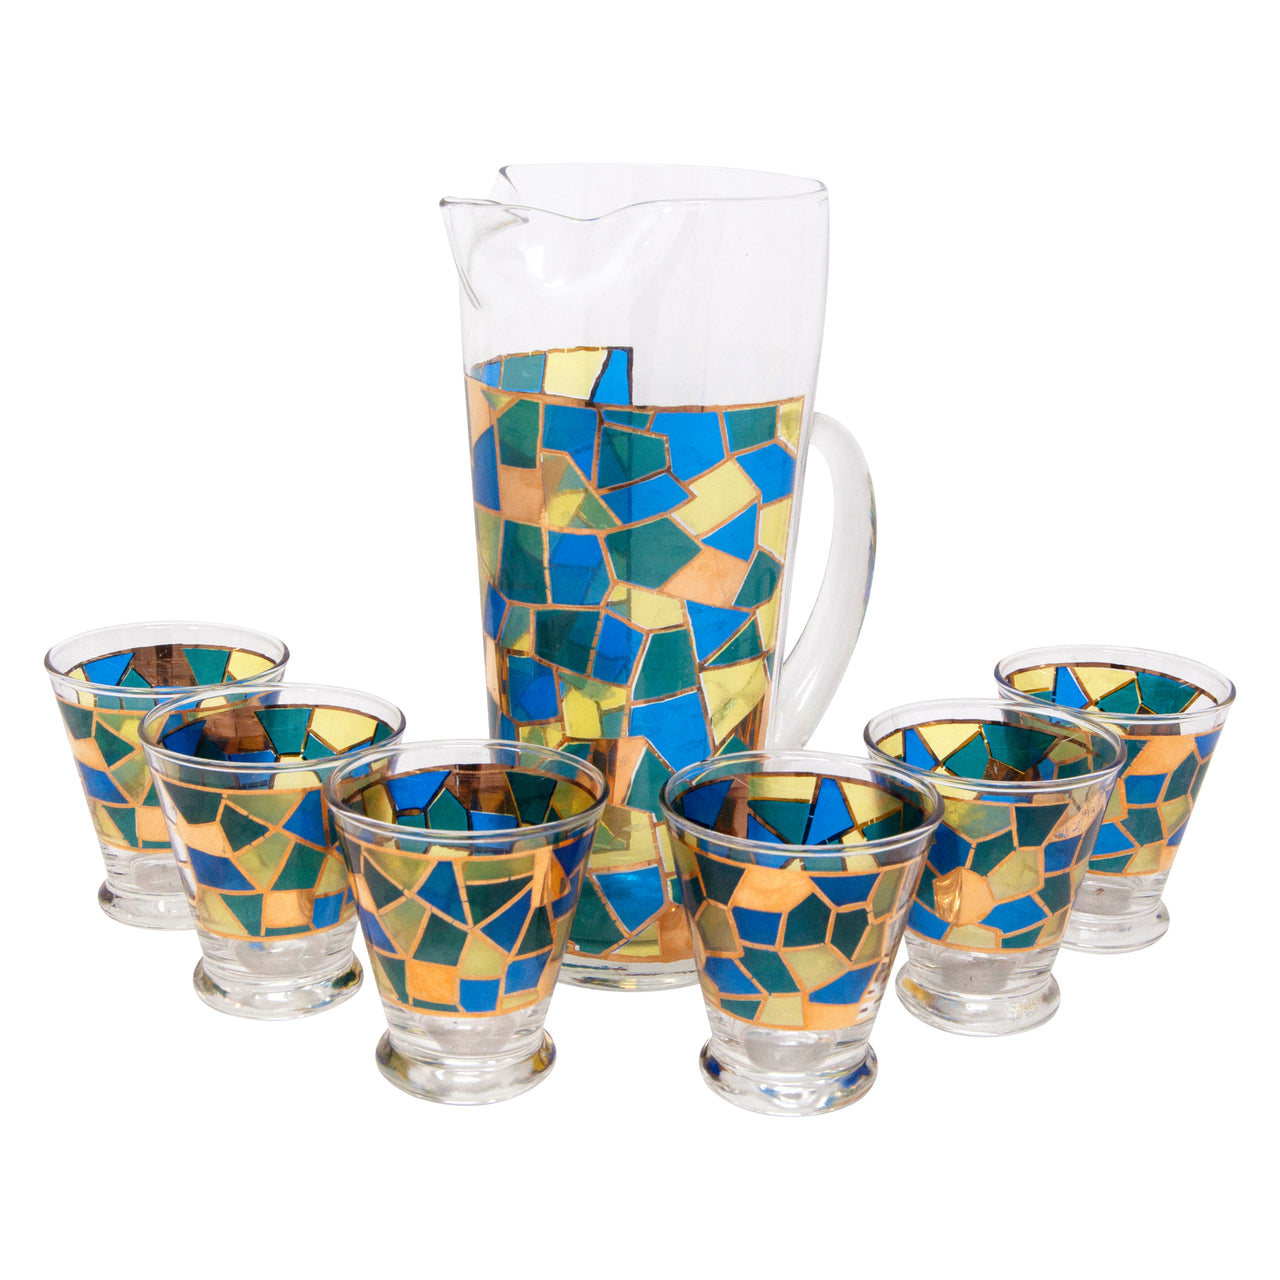 Vintage West Virginia Glass Mosaic Cocktail Pitcher Set | The Hour Shop